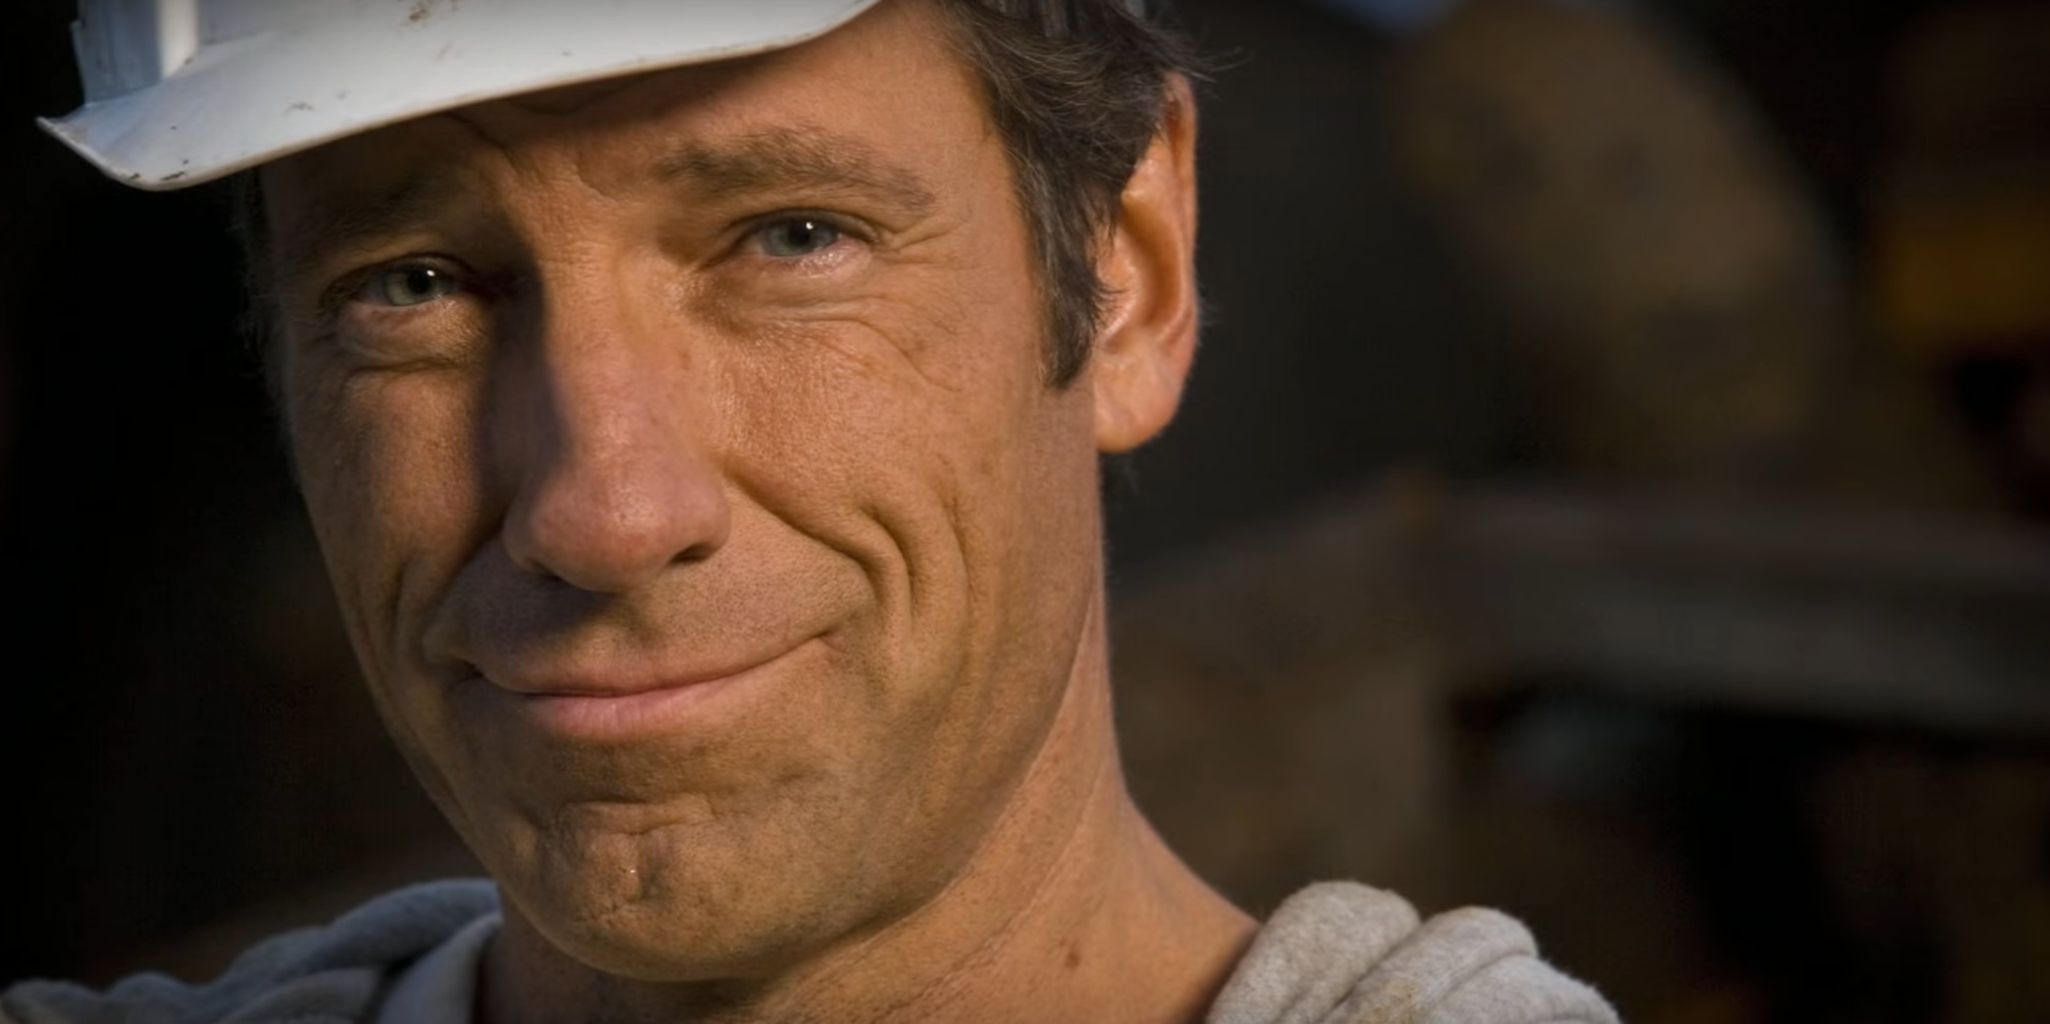 Mike Rowe Donald Trump post